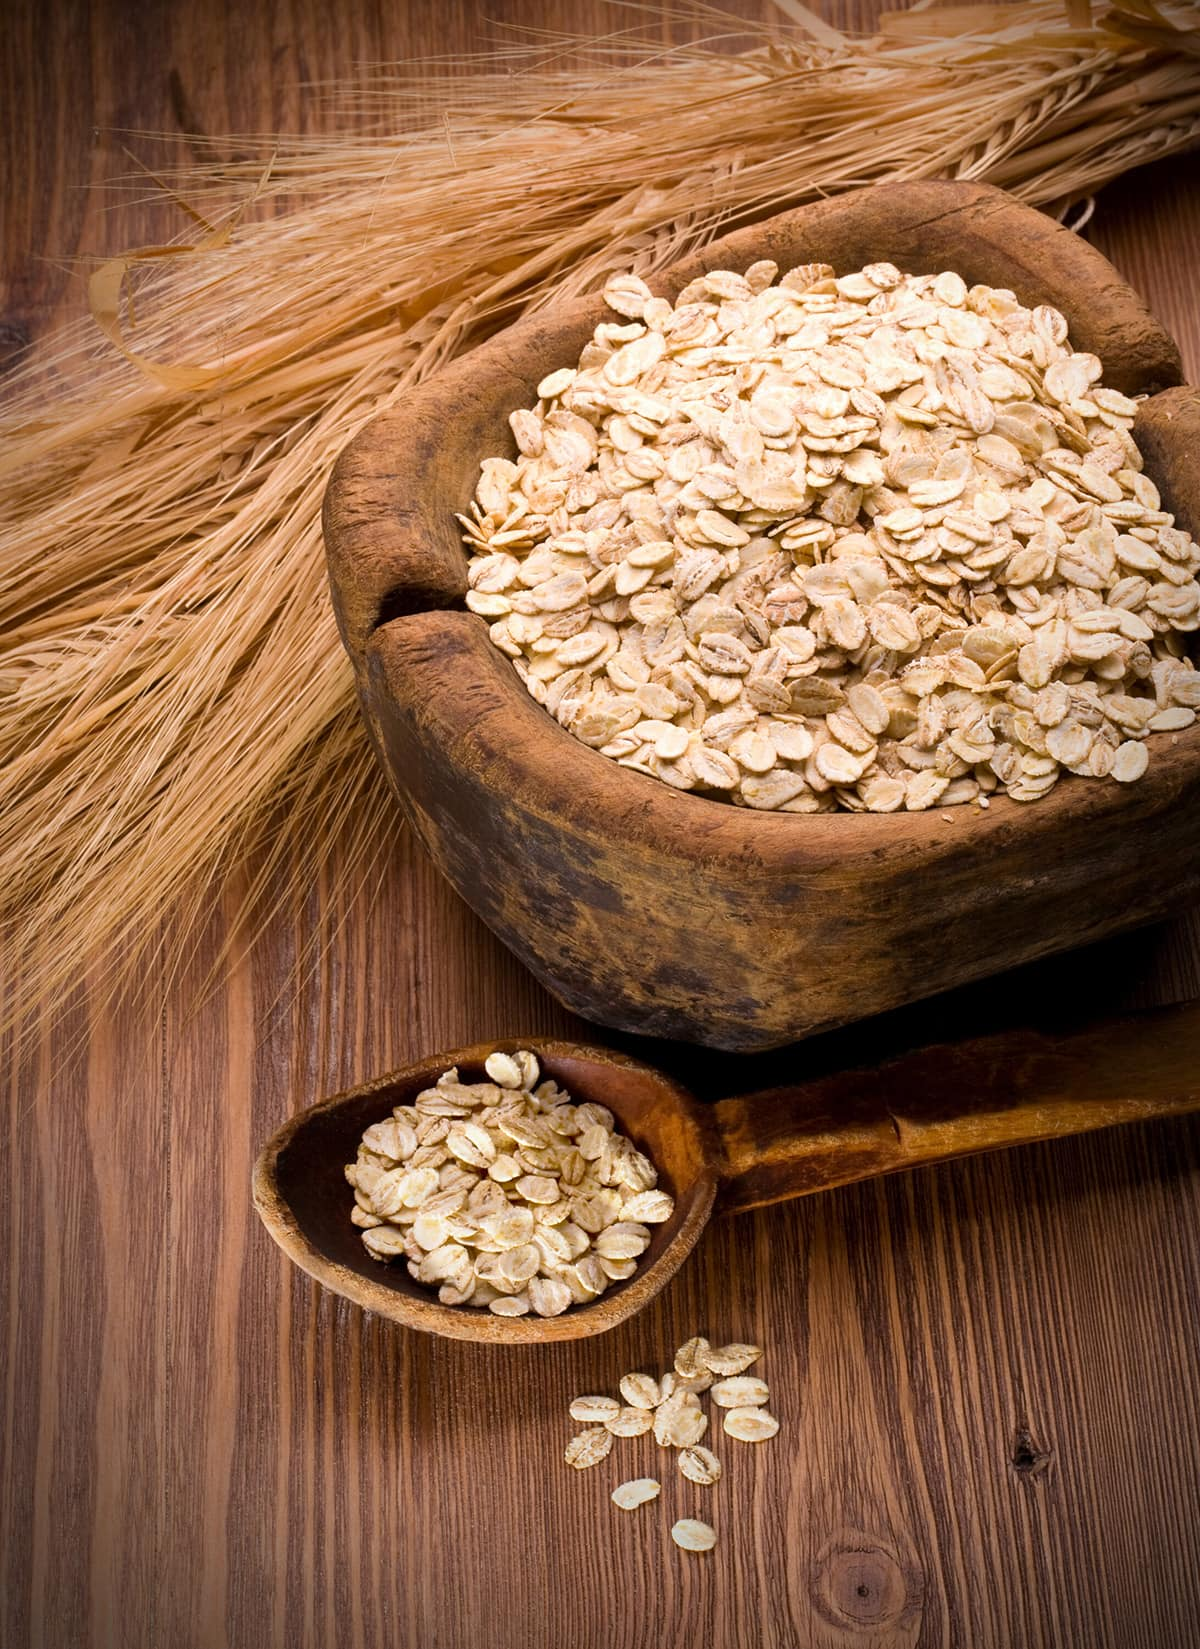 oatmeal in wooden bowl and wooden spoon